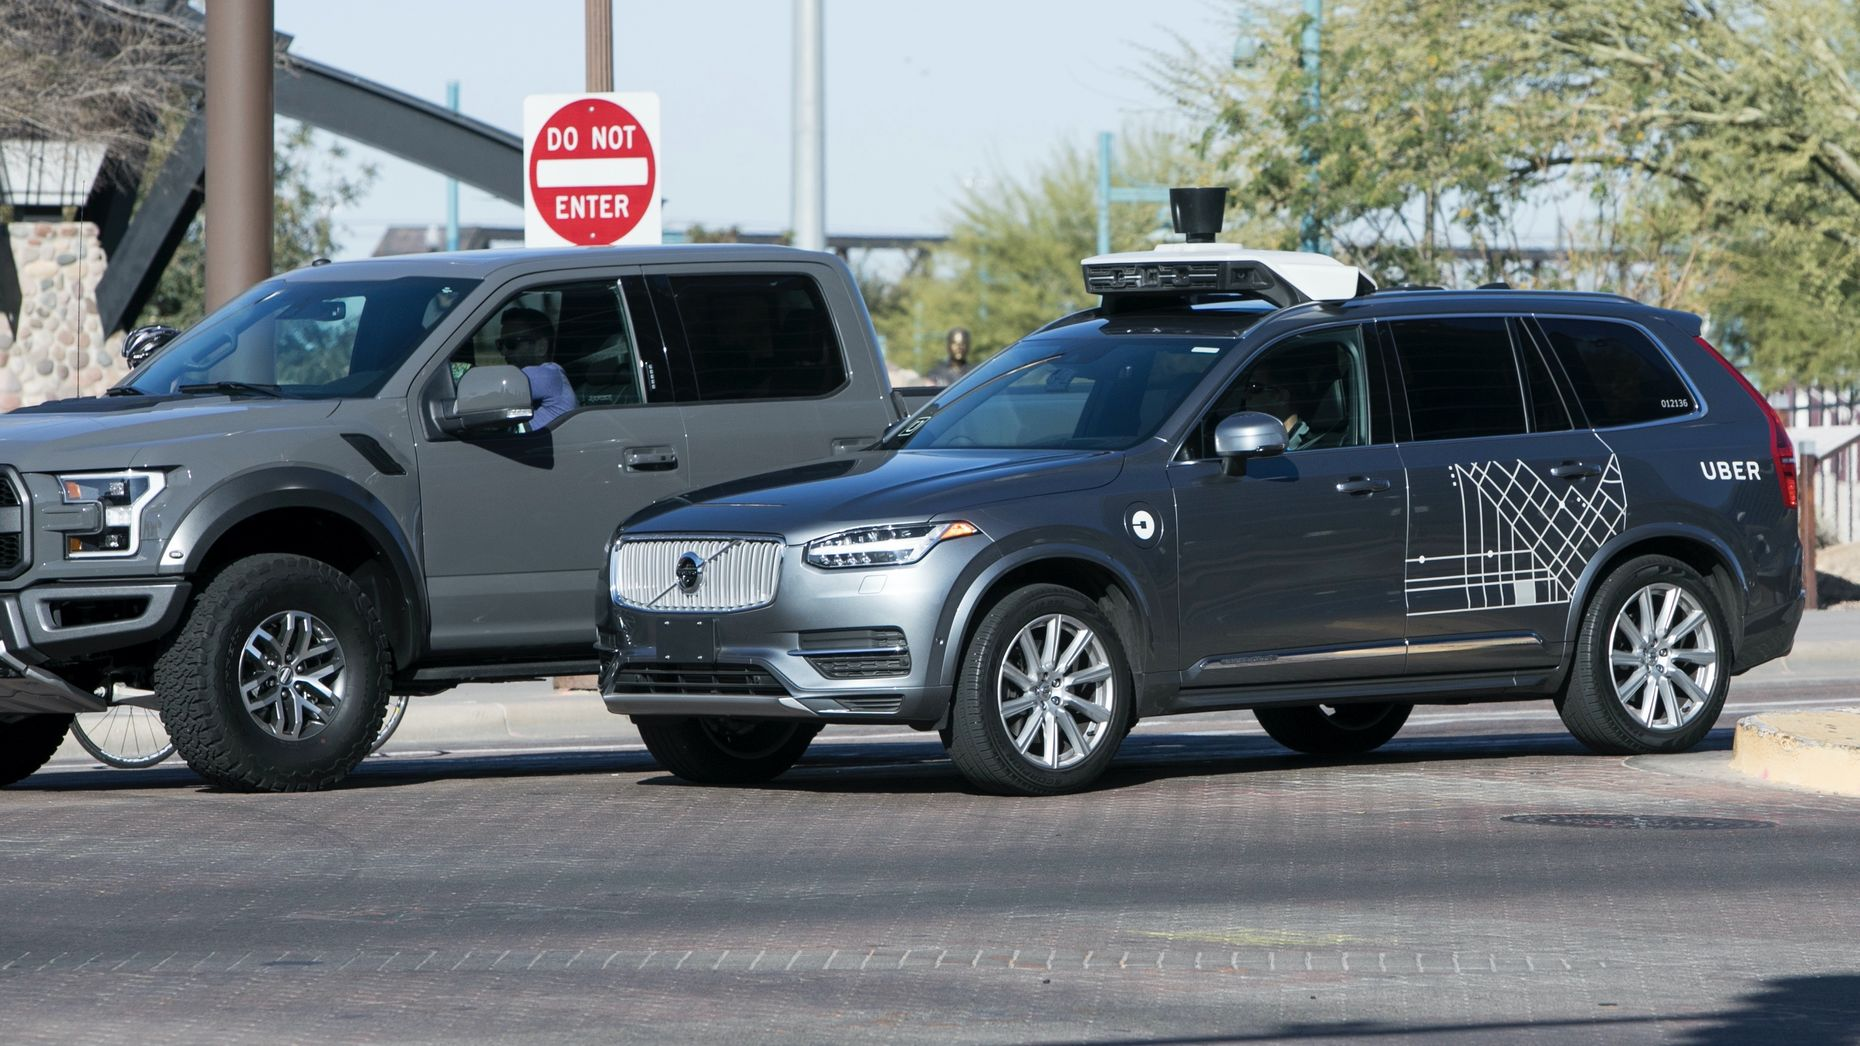 Uber Nears Deal for Self-Driving Car Simulation Startup